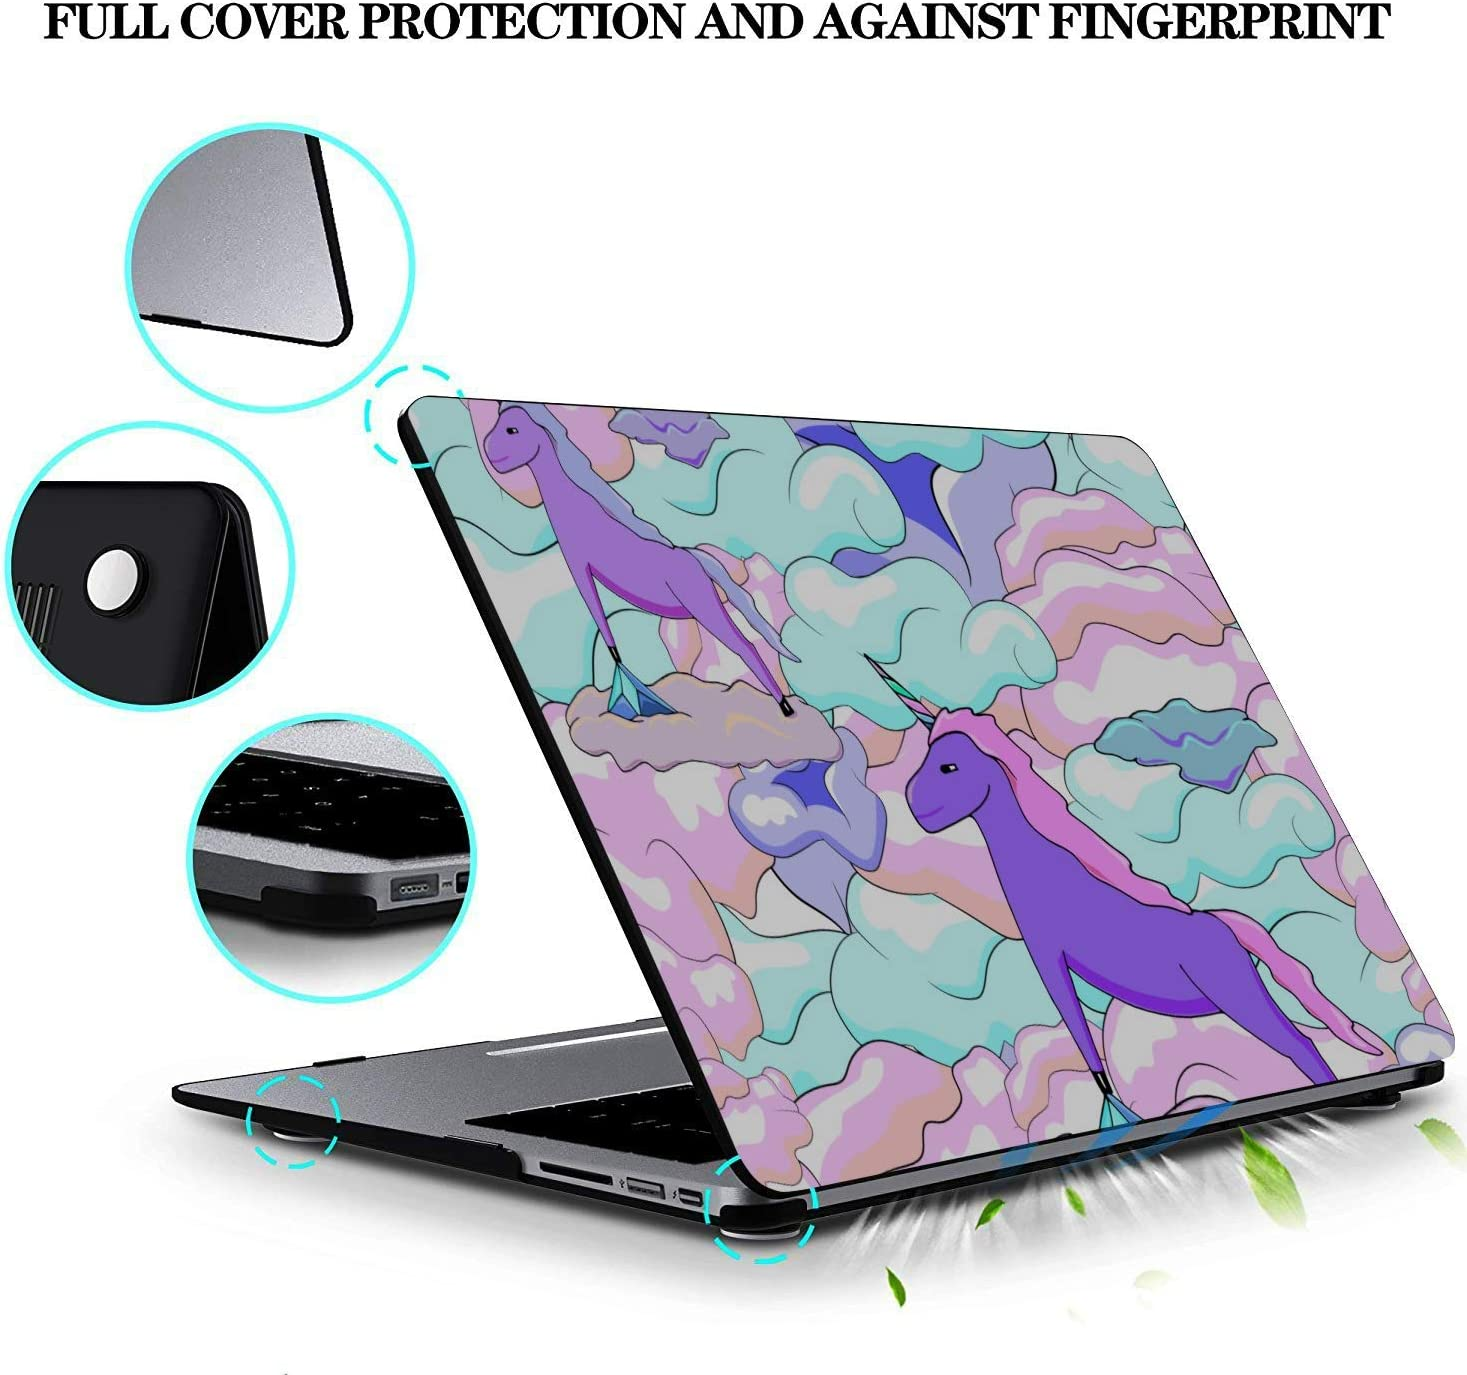 MacBook Air Laptop Case Serious Creative Fashion Painting Plastic Hard Shell Compatible Mac Air 11 Pro 13 15 MacBook Case Protection for MacBook 2016-2019 Version